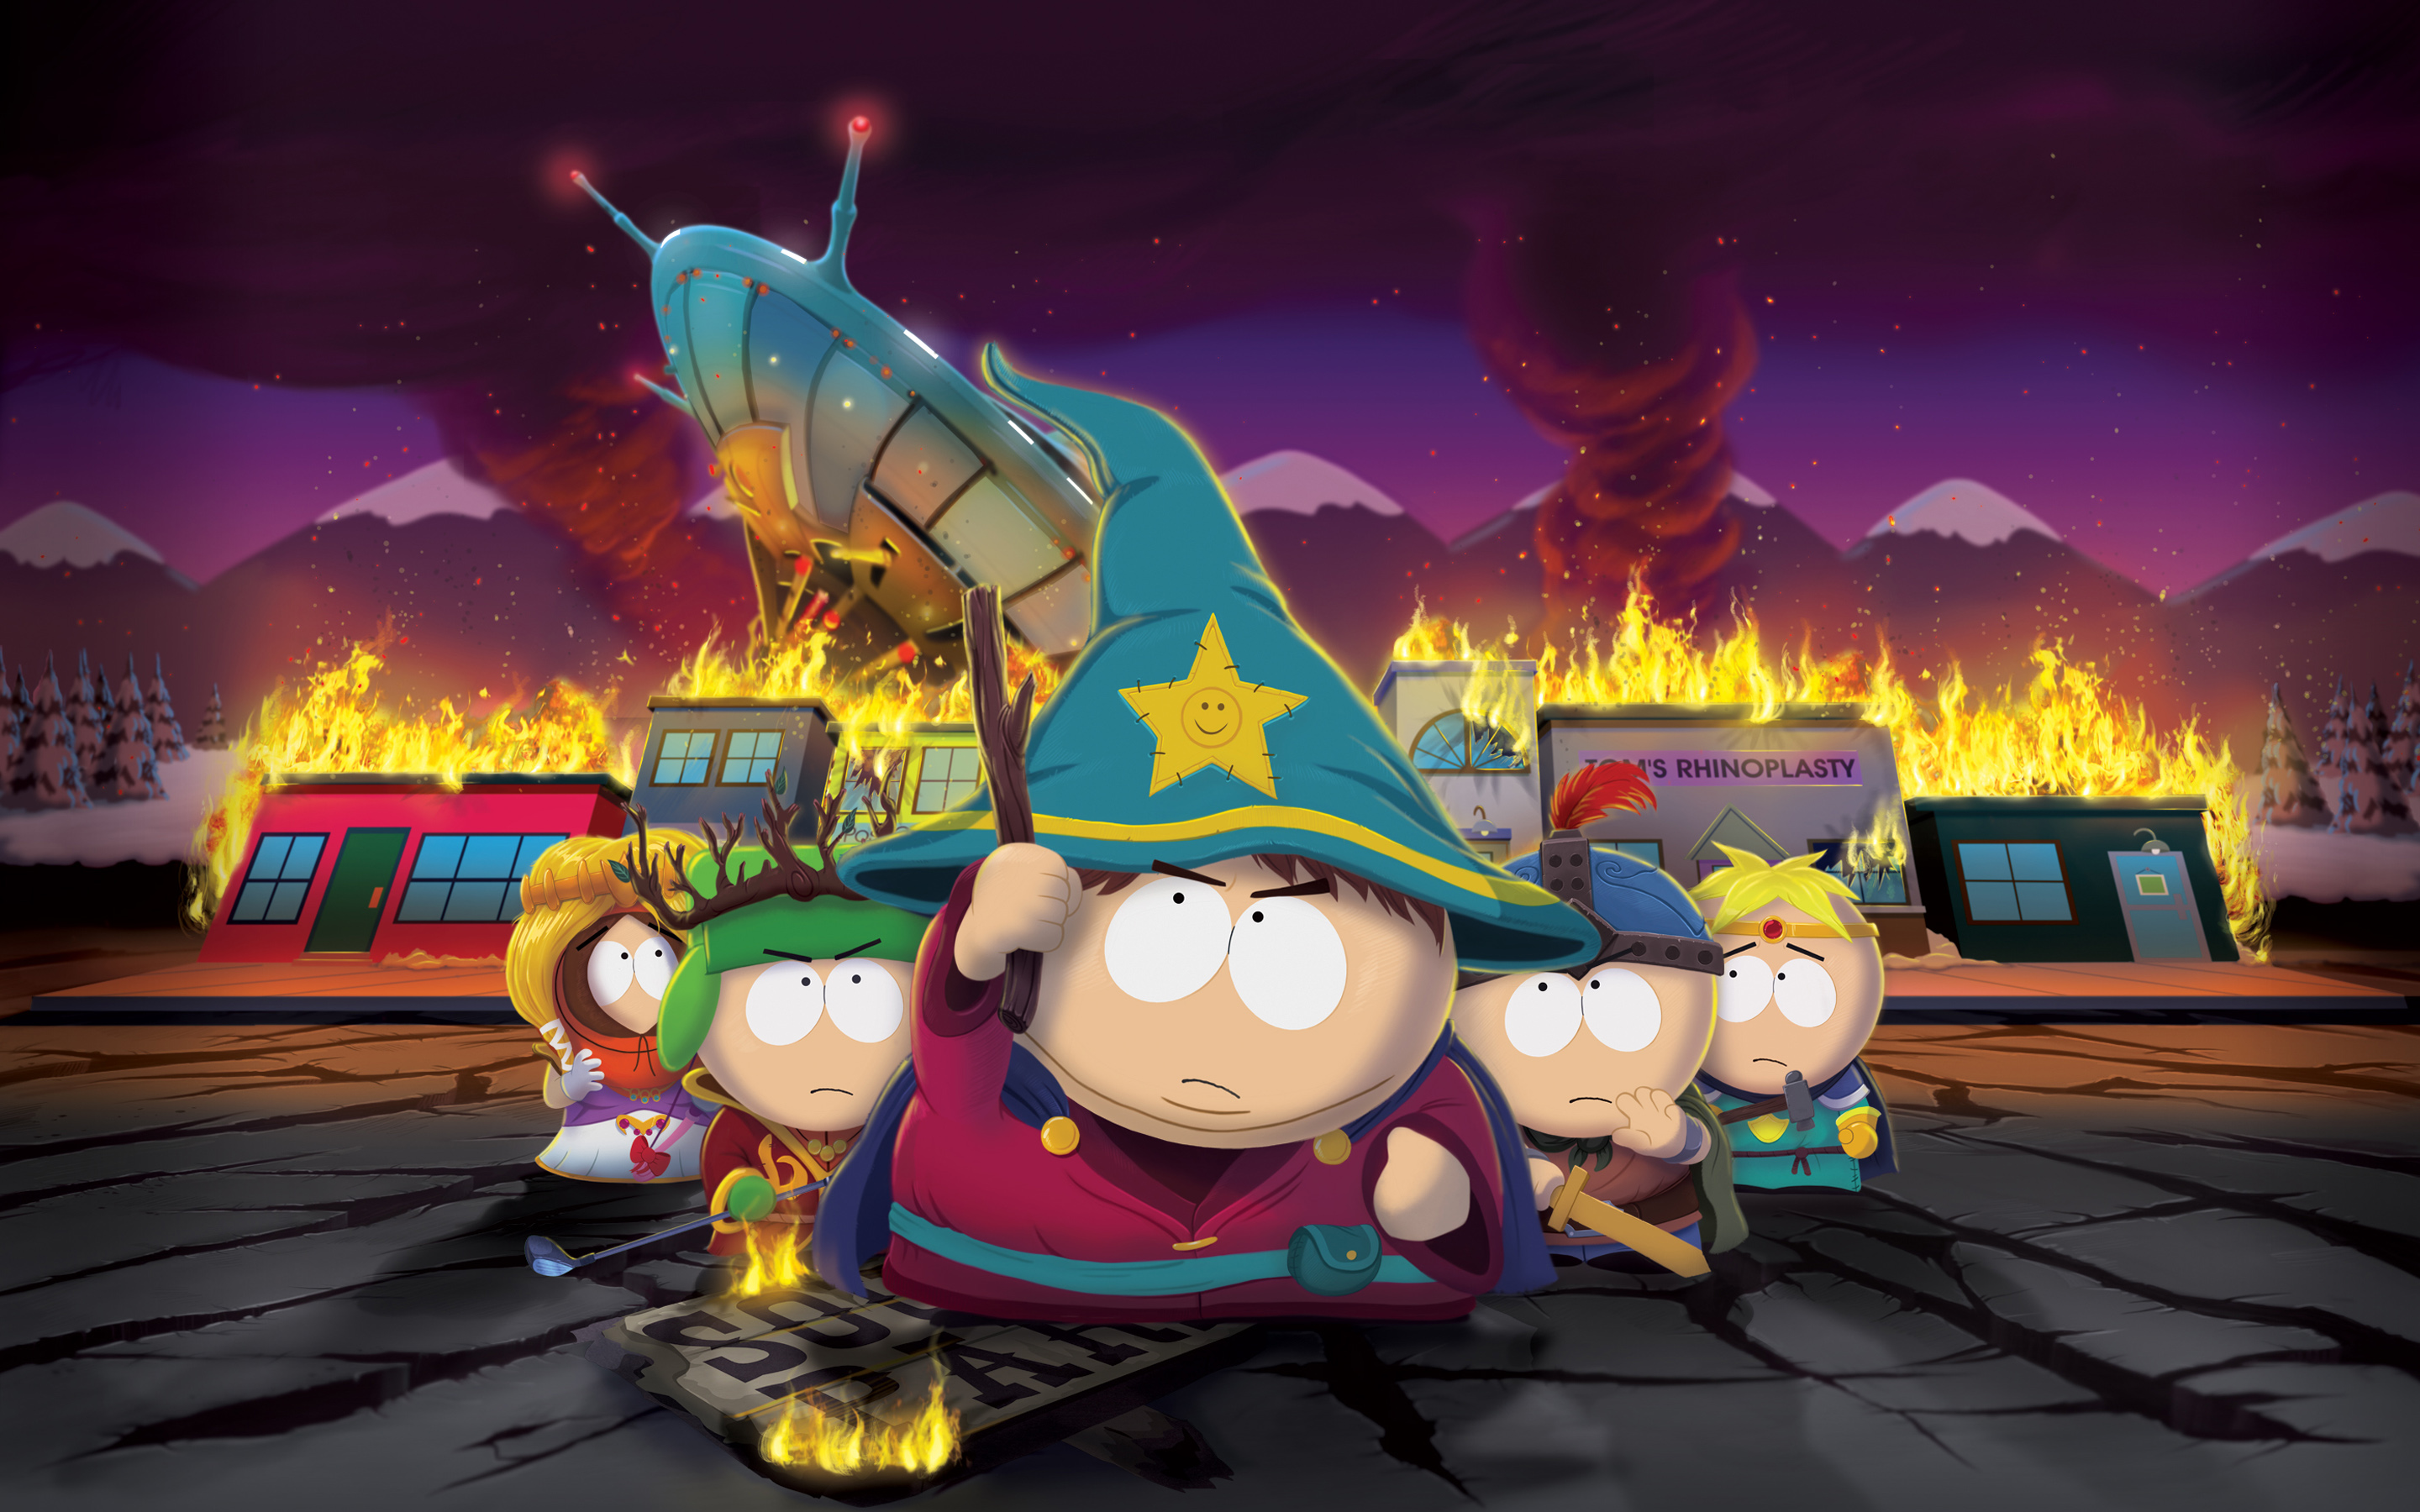 HD Wallpapers South Park The Stick of Truth